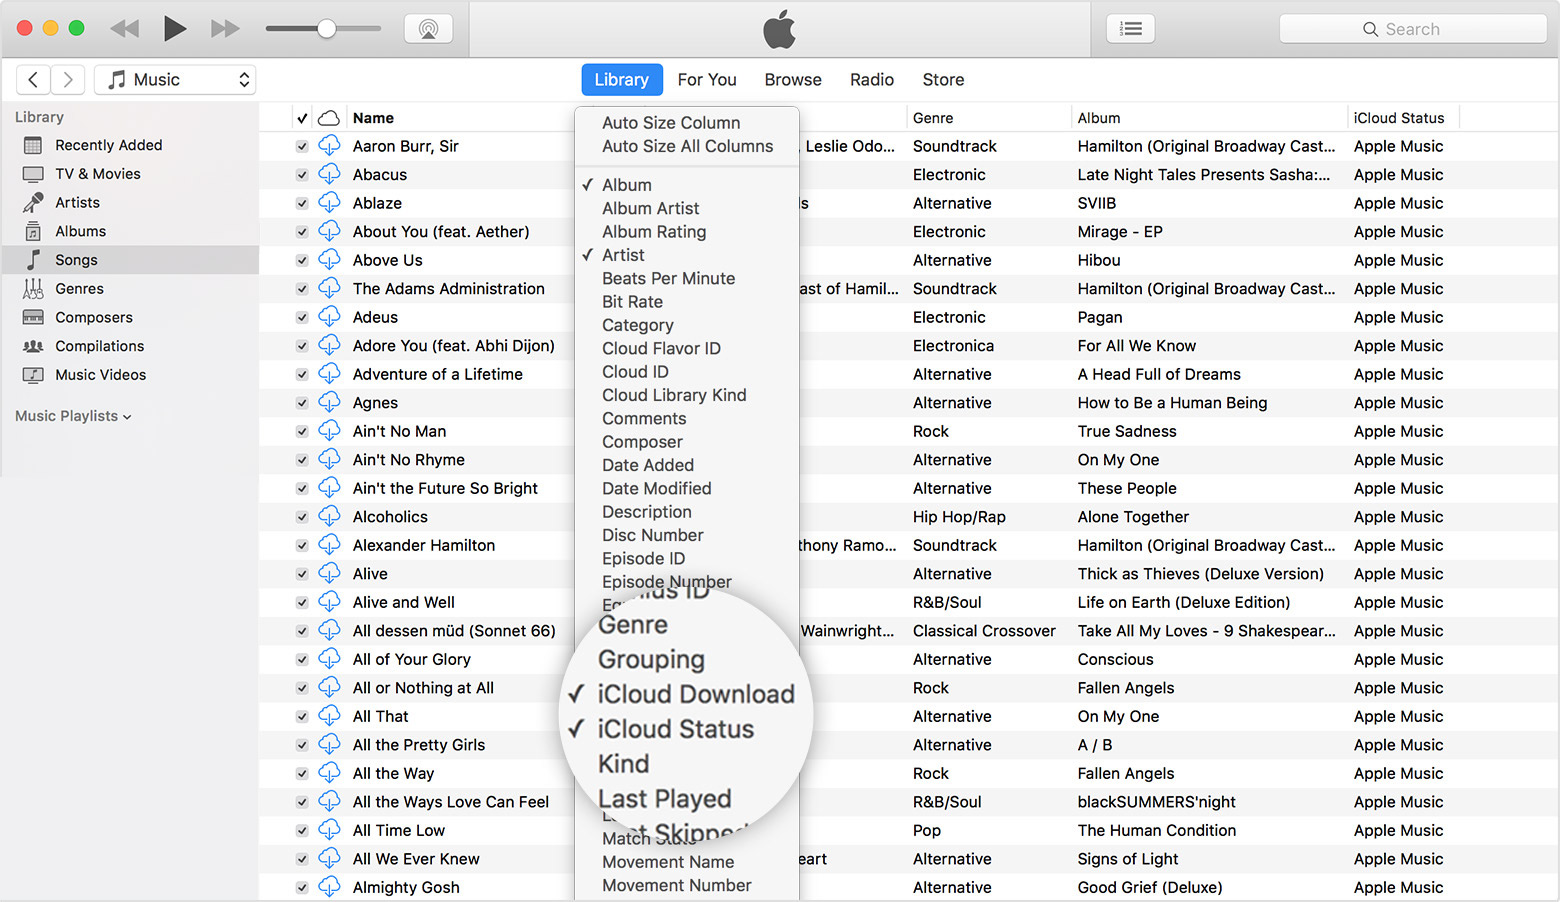 About icloud music library icons and status apple support if there isnt select icloud download or icloud status to turn the columns on buycottarizona